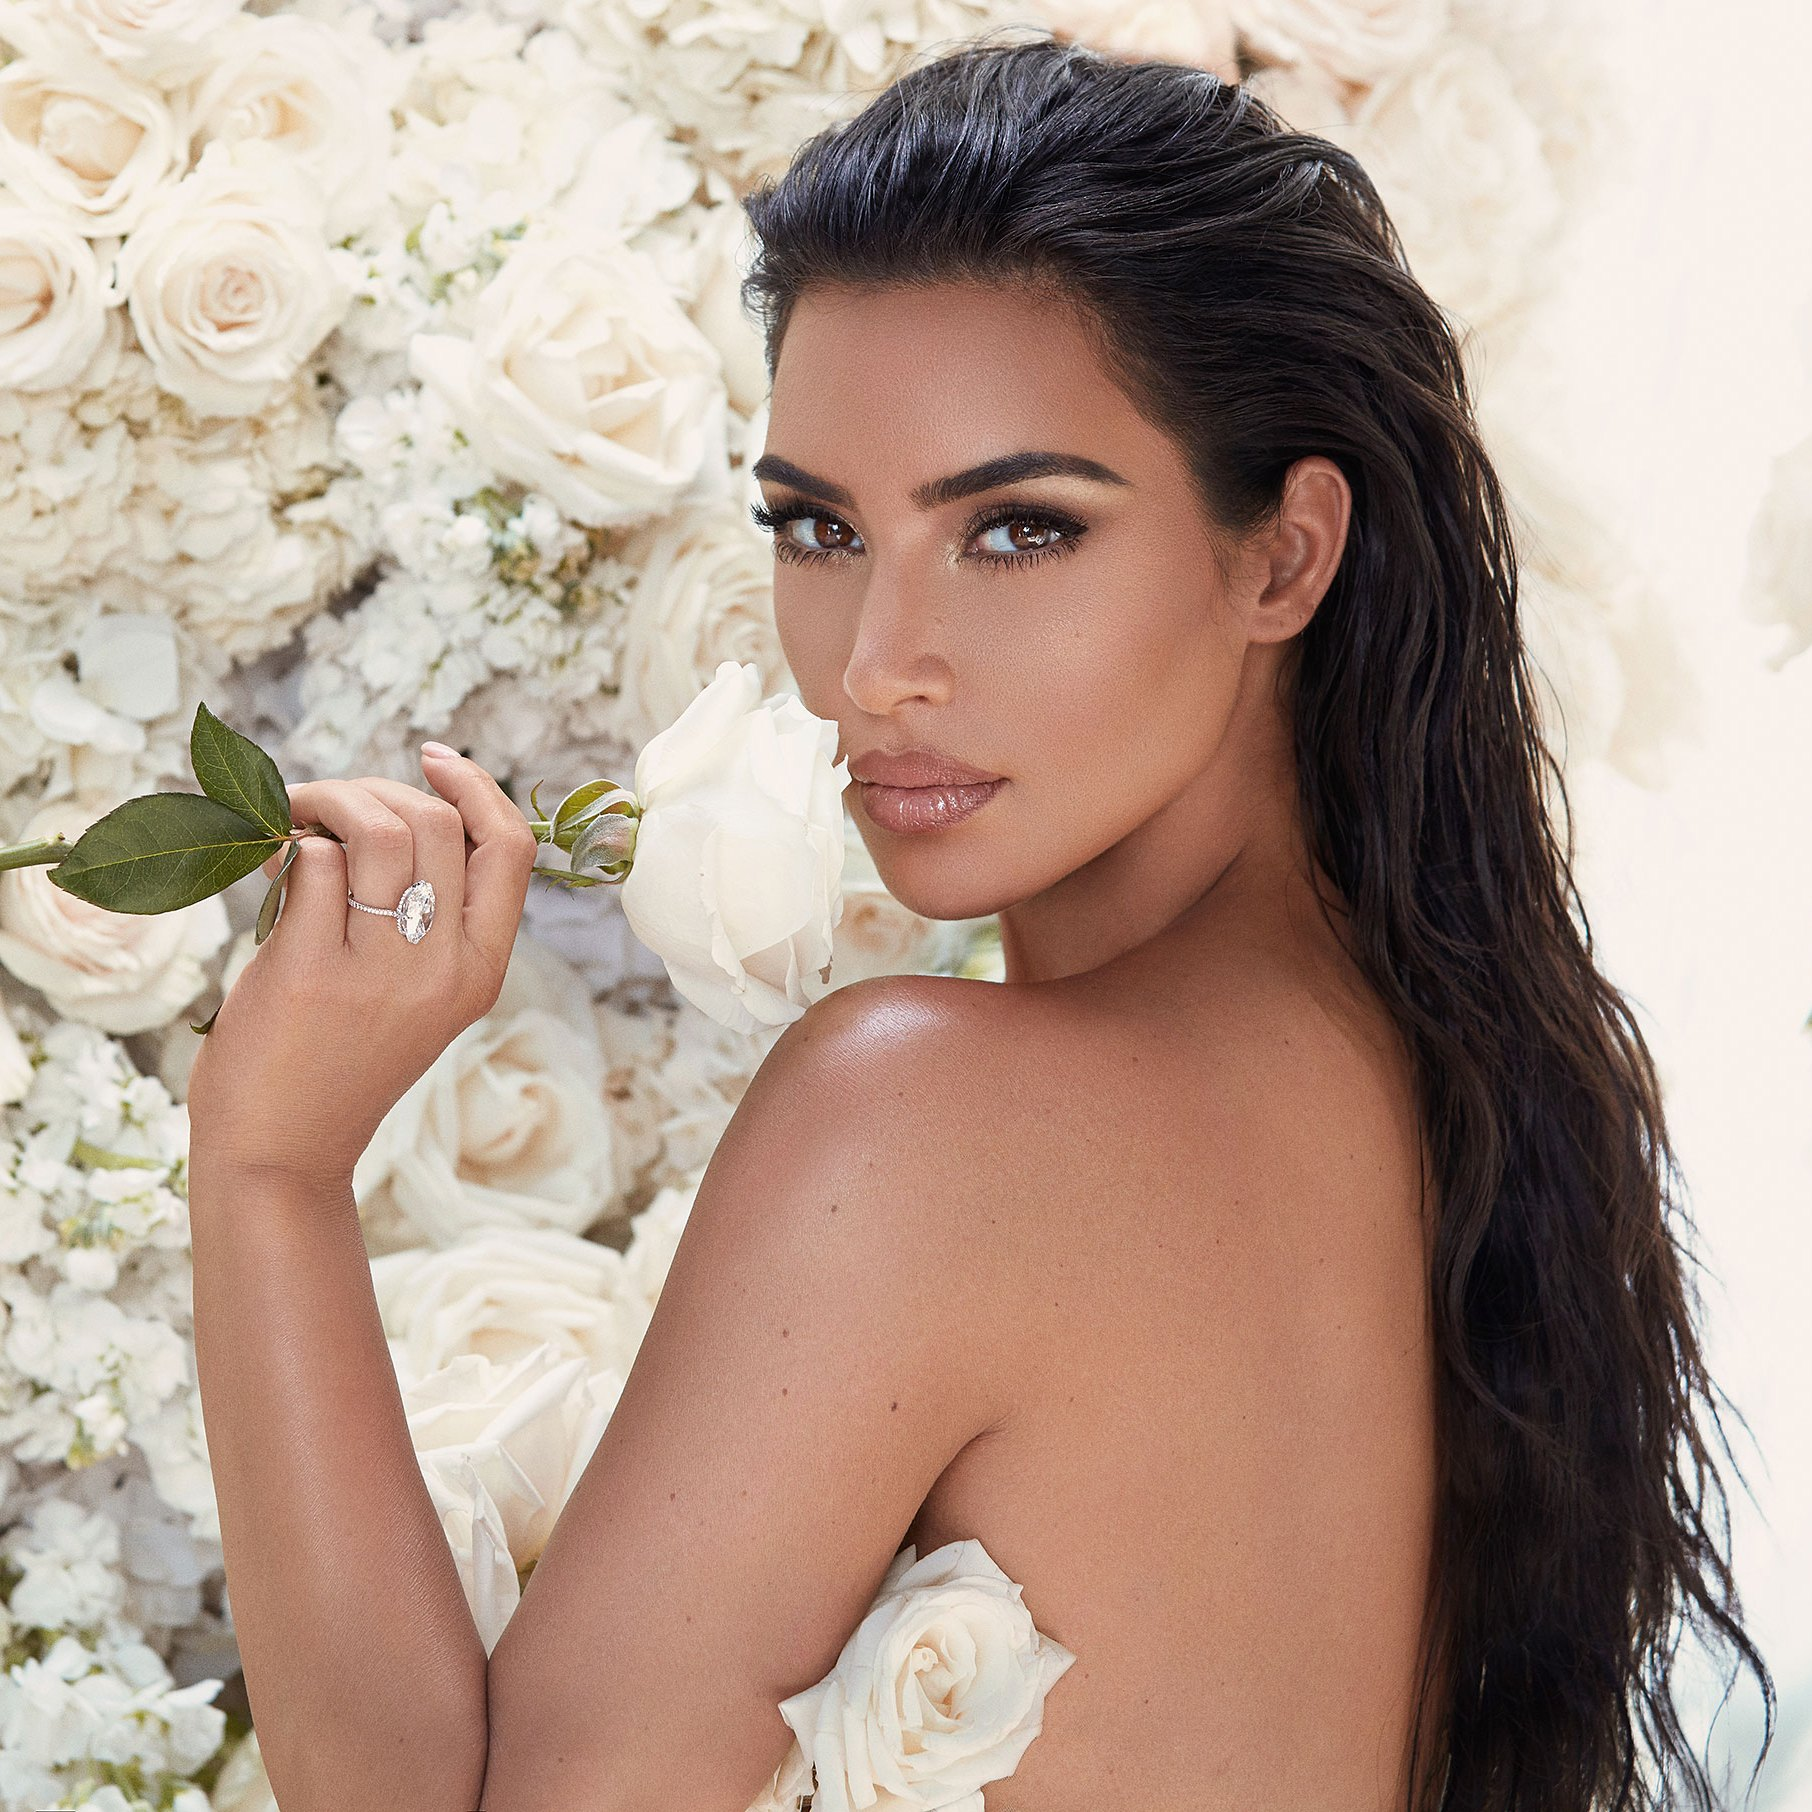 Promo-KKW-BEAUTY-MRS-WEST-COLLECTION-_GREG-SWALES-2